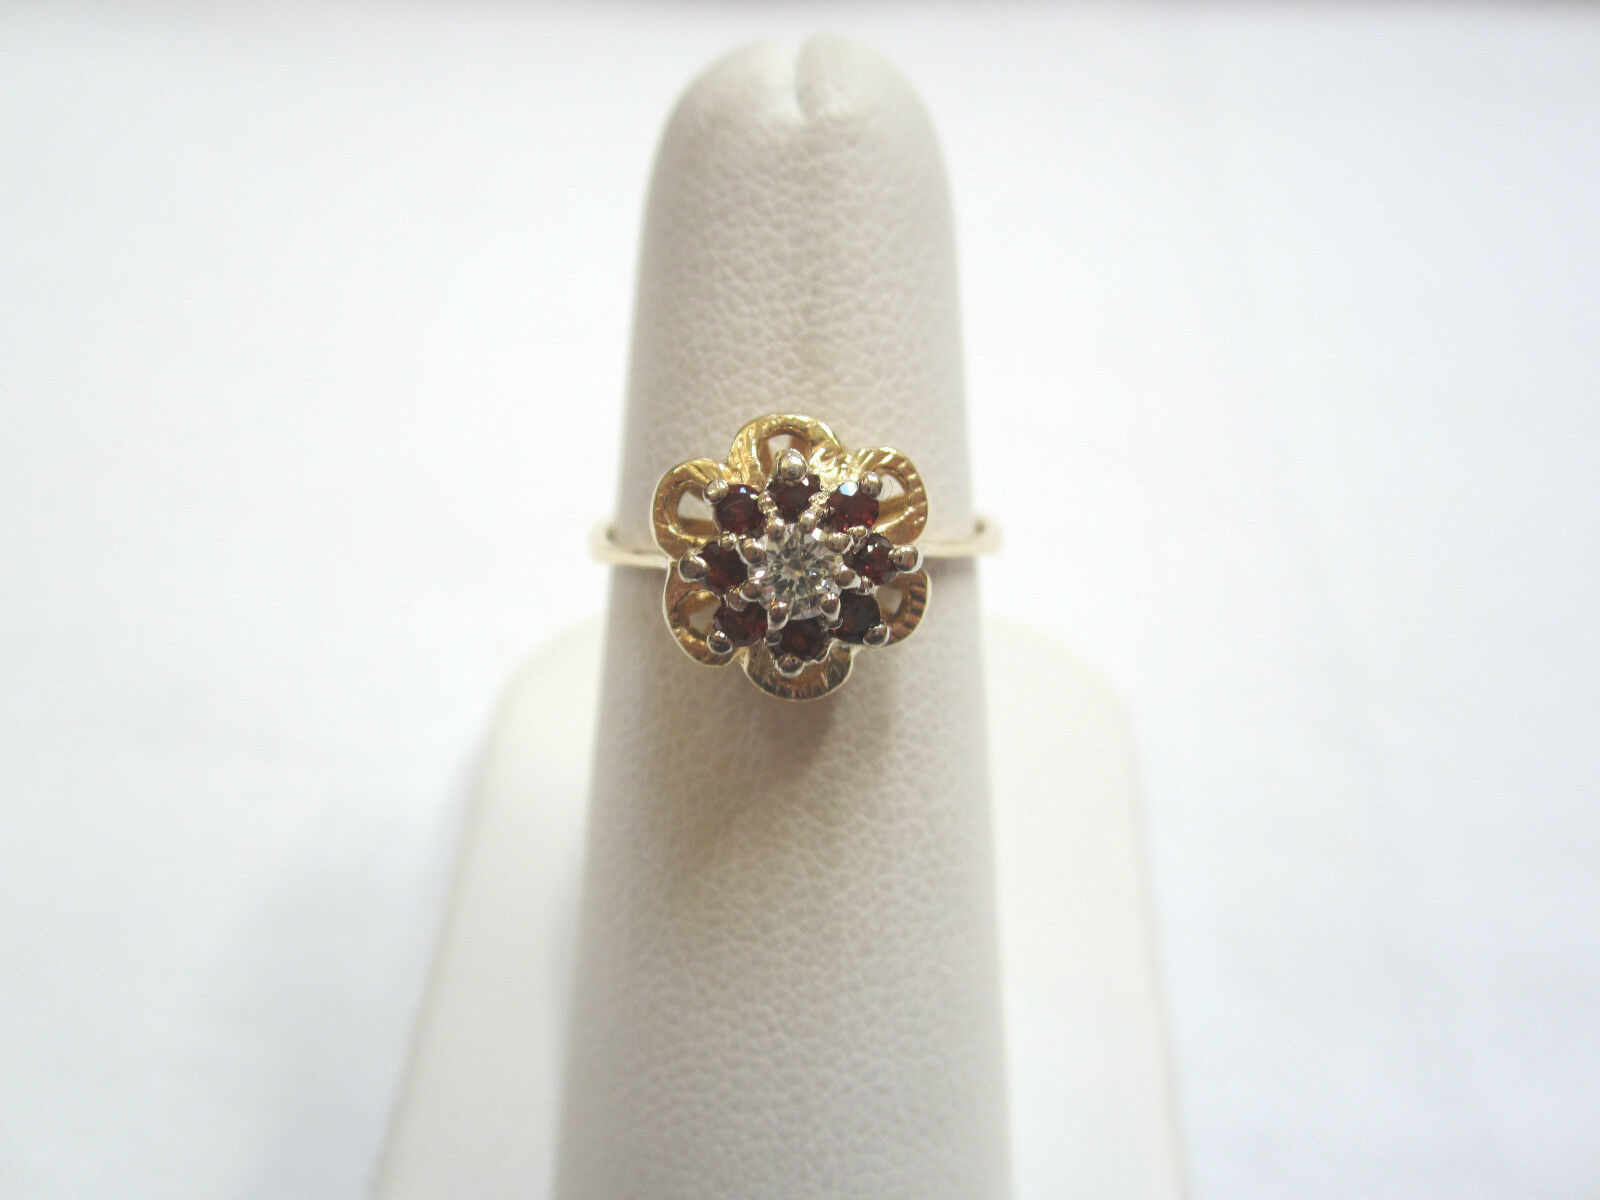 14K gold RING WITH CENTER DIAMOND SURROUNDED BY GARNET GEMSTONES